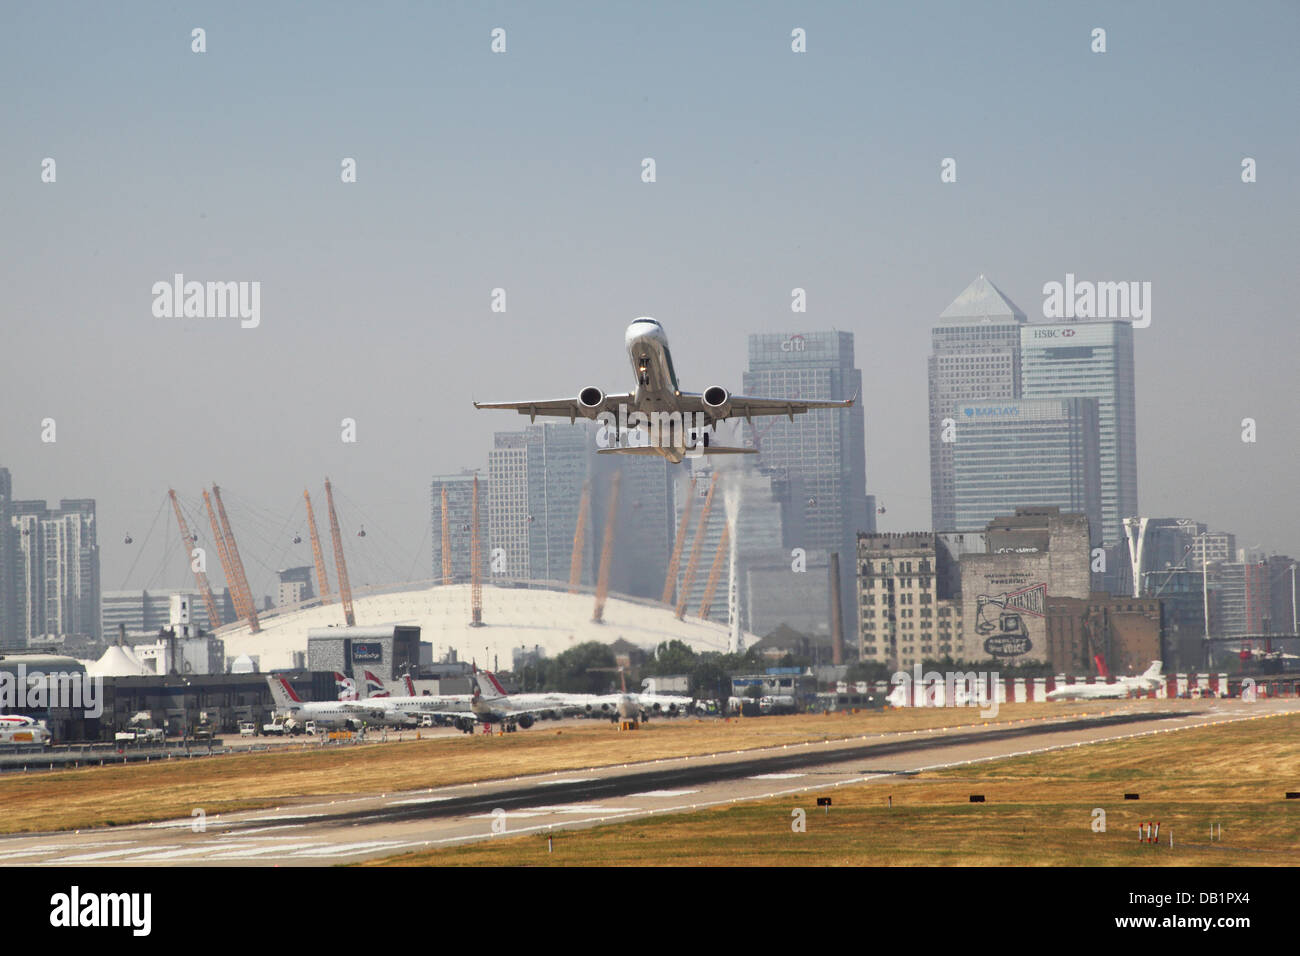 Un passeggero jet decolla dall'Aeroporto di London City con Canary Wharf e il Millennium Dome in background Immagini Stock